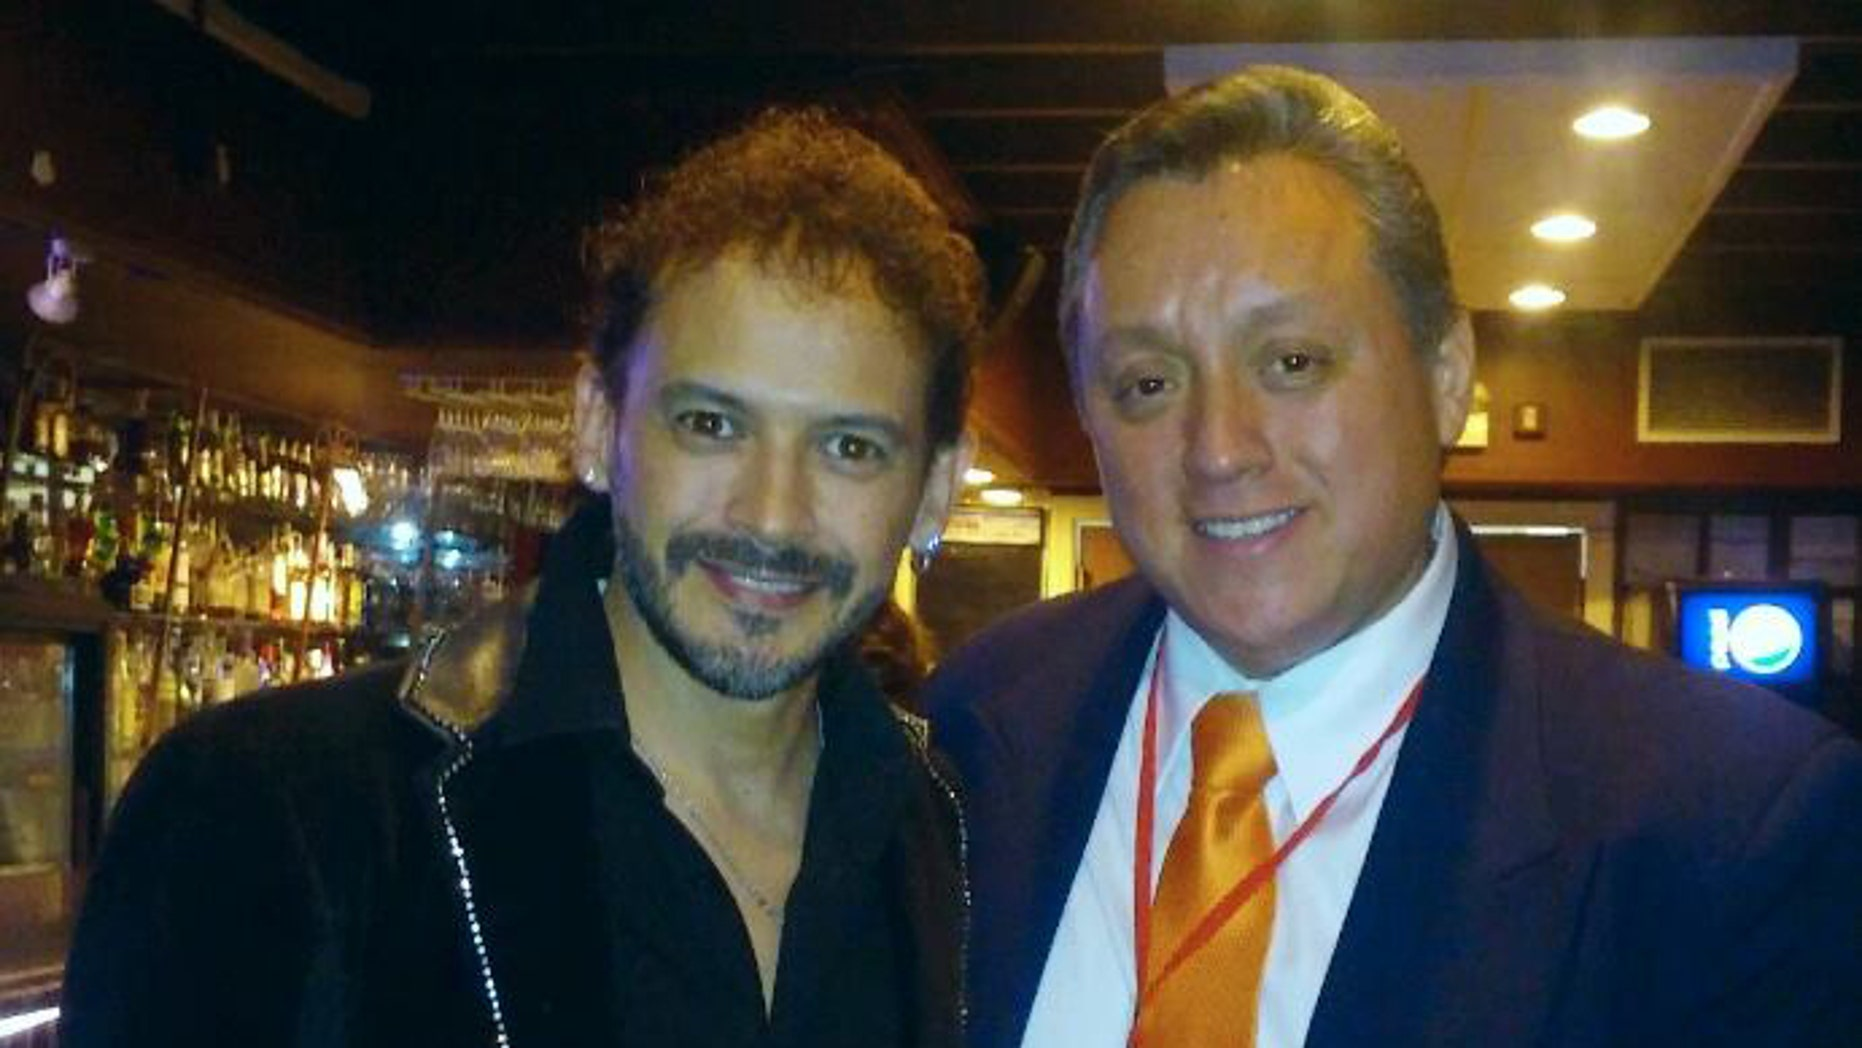 """In this March 13, 2016 photo released by Miguel Angel Sanchez on June 19, 2016, Sanchez, right, stands with Mexican singer Alejandro """"Jano"""" Fuentes in a restaurat in Chicago. Fuentes, who appeared on the Mexican version of """"The Voice"""" in 2011 was shot and critically wounded on June 18 in an ambush shortly after celebrating his birthday with friends in Chicago. (Miguel Angel Sanchez via AP)"""